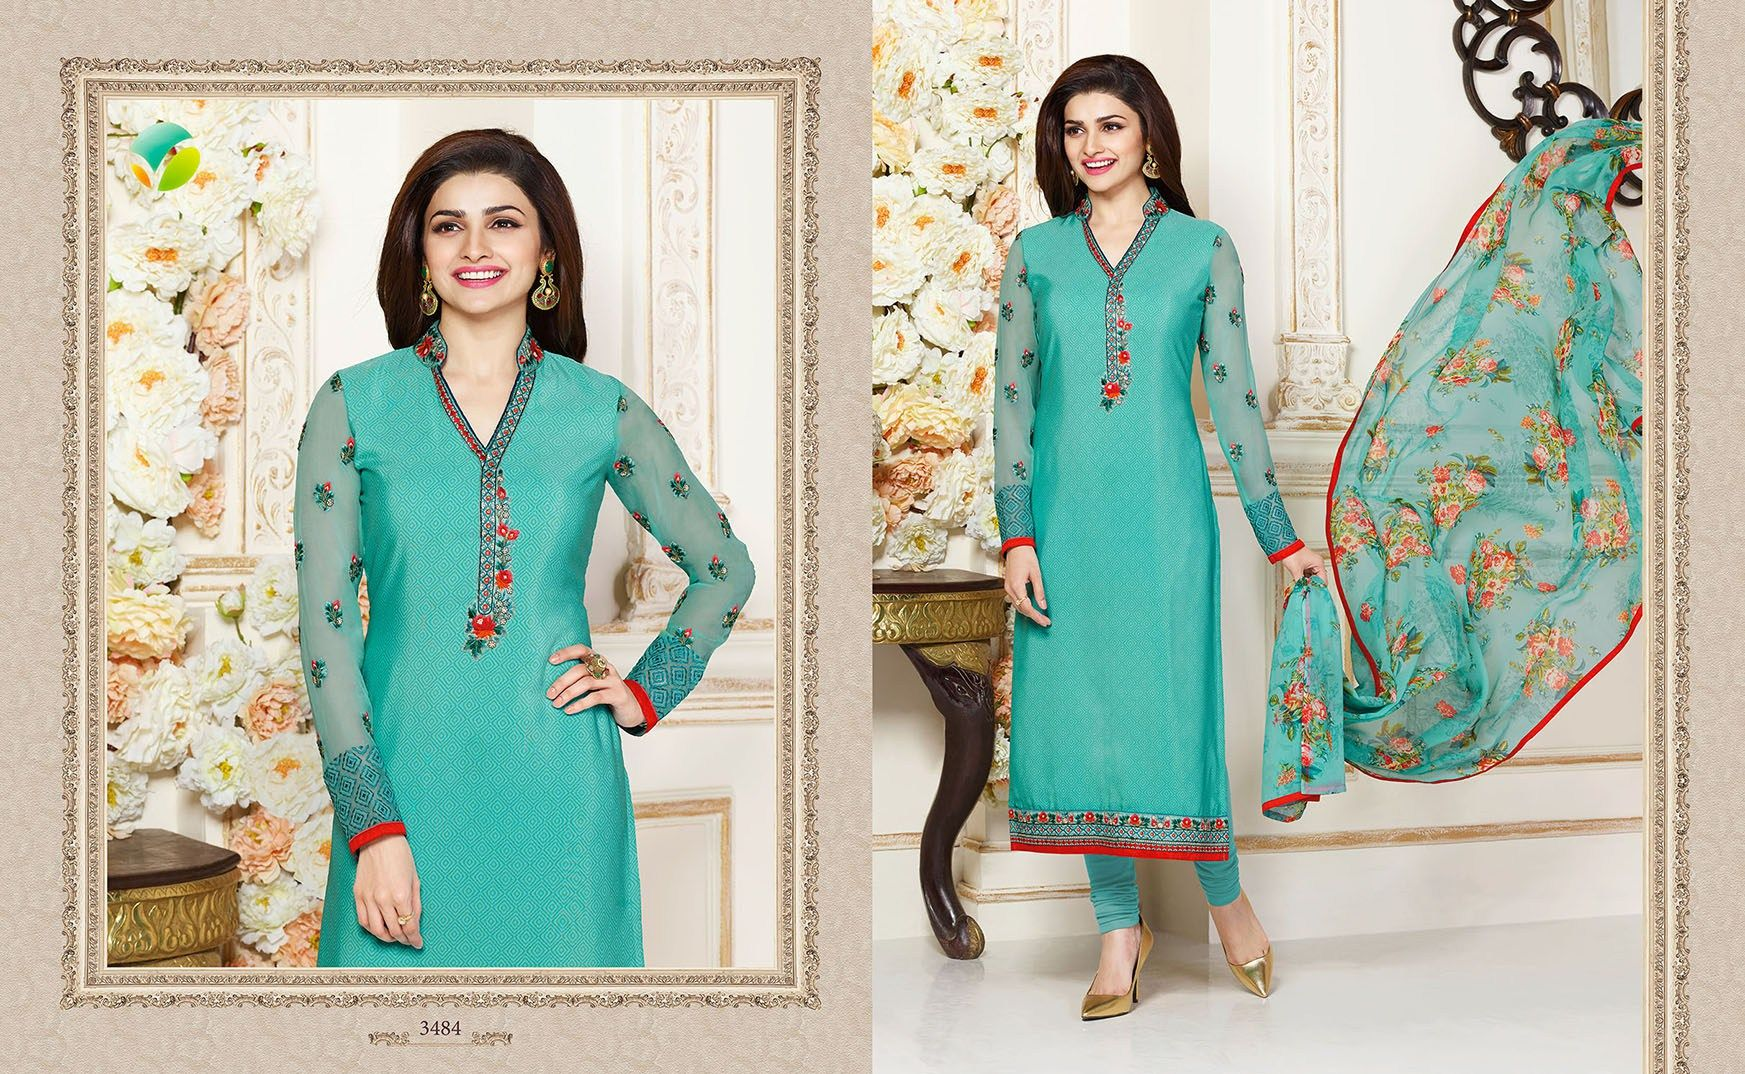 8bb2af478e VINAY FASHION SILKINA ROYAL CREPE VOL-4 buy online from pehnava fashion mart.  contact on +91 9974806954 OR +91 9662030388